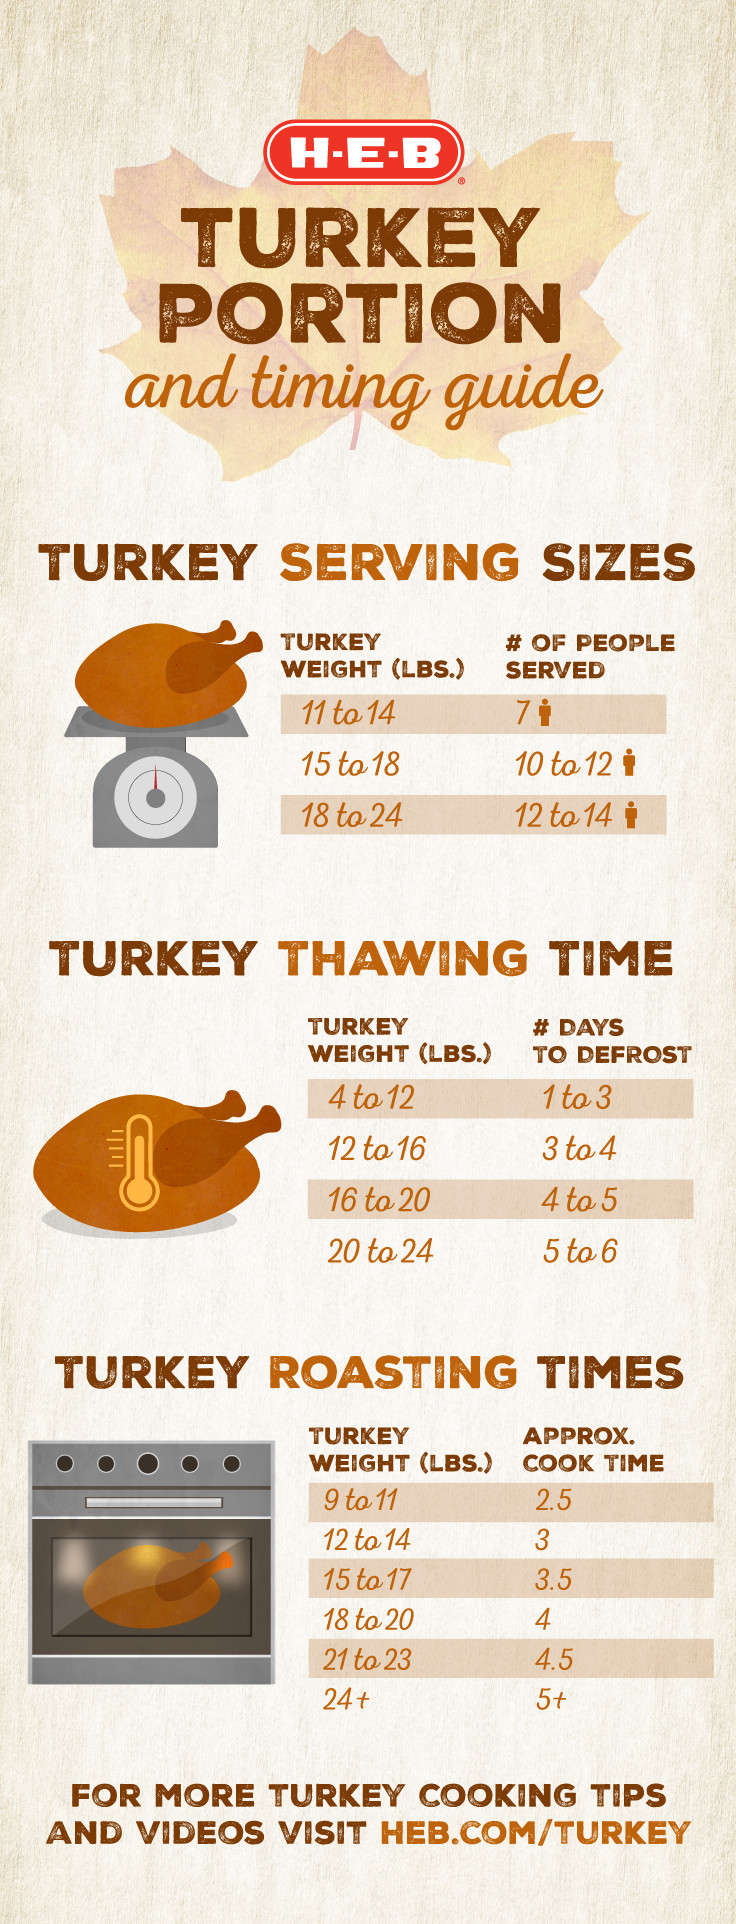 Turkey Timing and Portion Guide